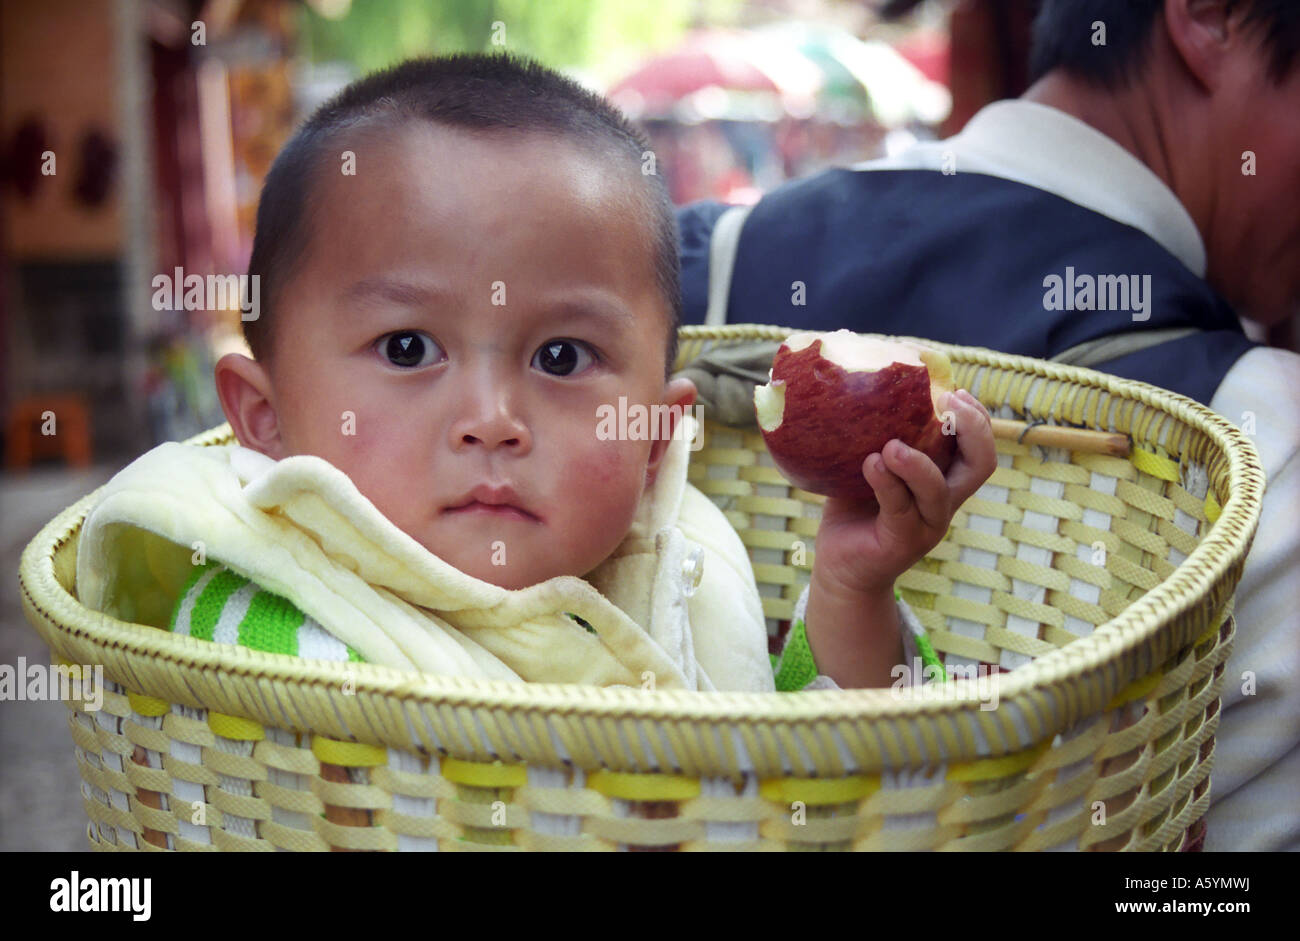 Fussy Eater Child Stock Photos & Fussy Eater Child Stock ...